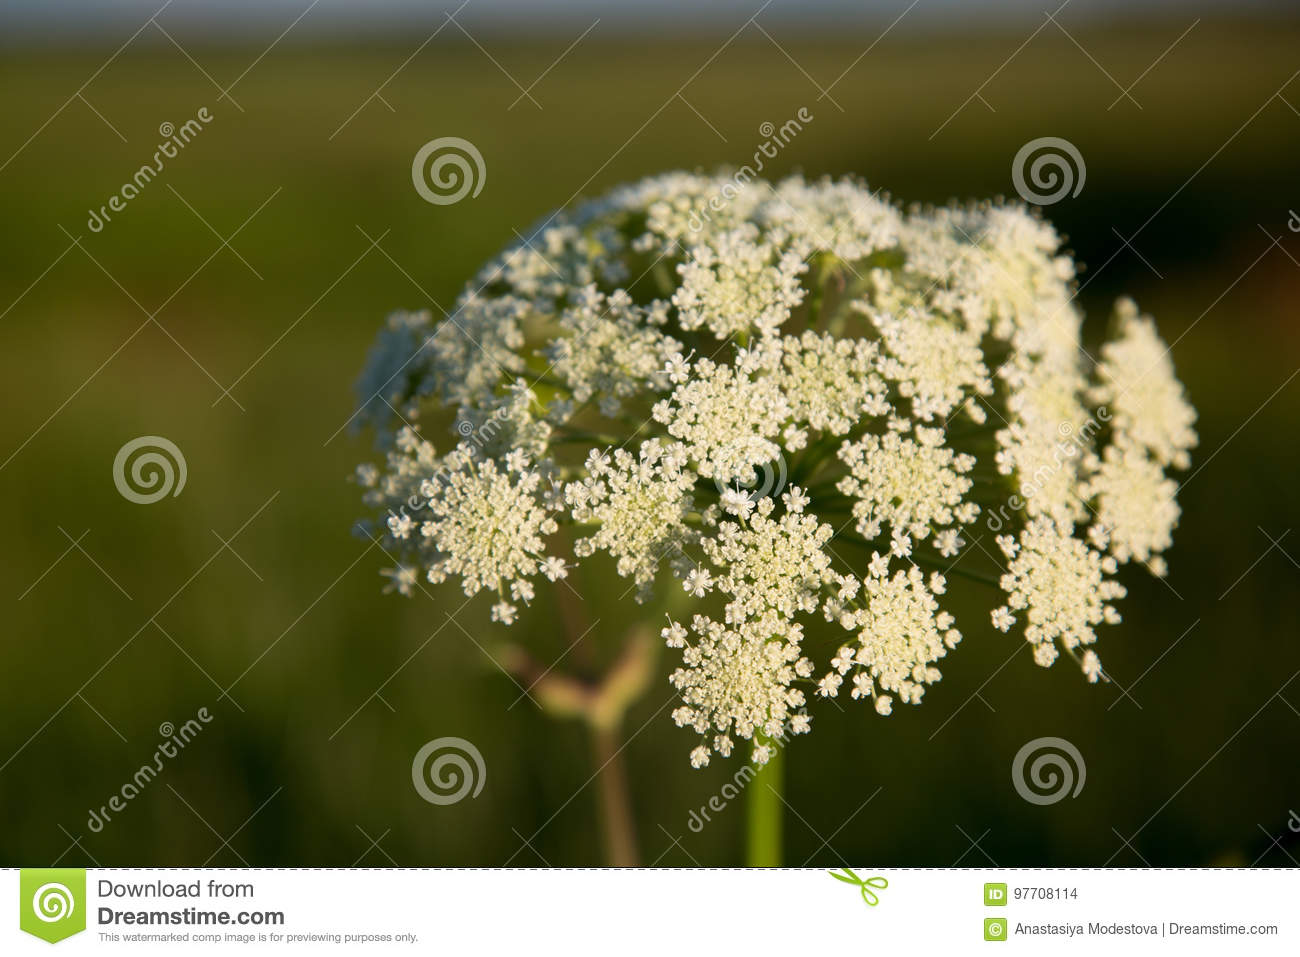 Poisonous flower white hemlock closeup shallow depth of filed stock download poisonous flower white hemlock closeup shallow depth of filed stock photo image of blossom mightylinksfo